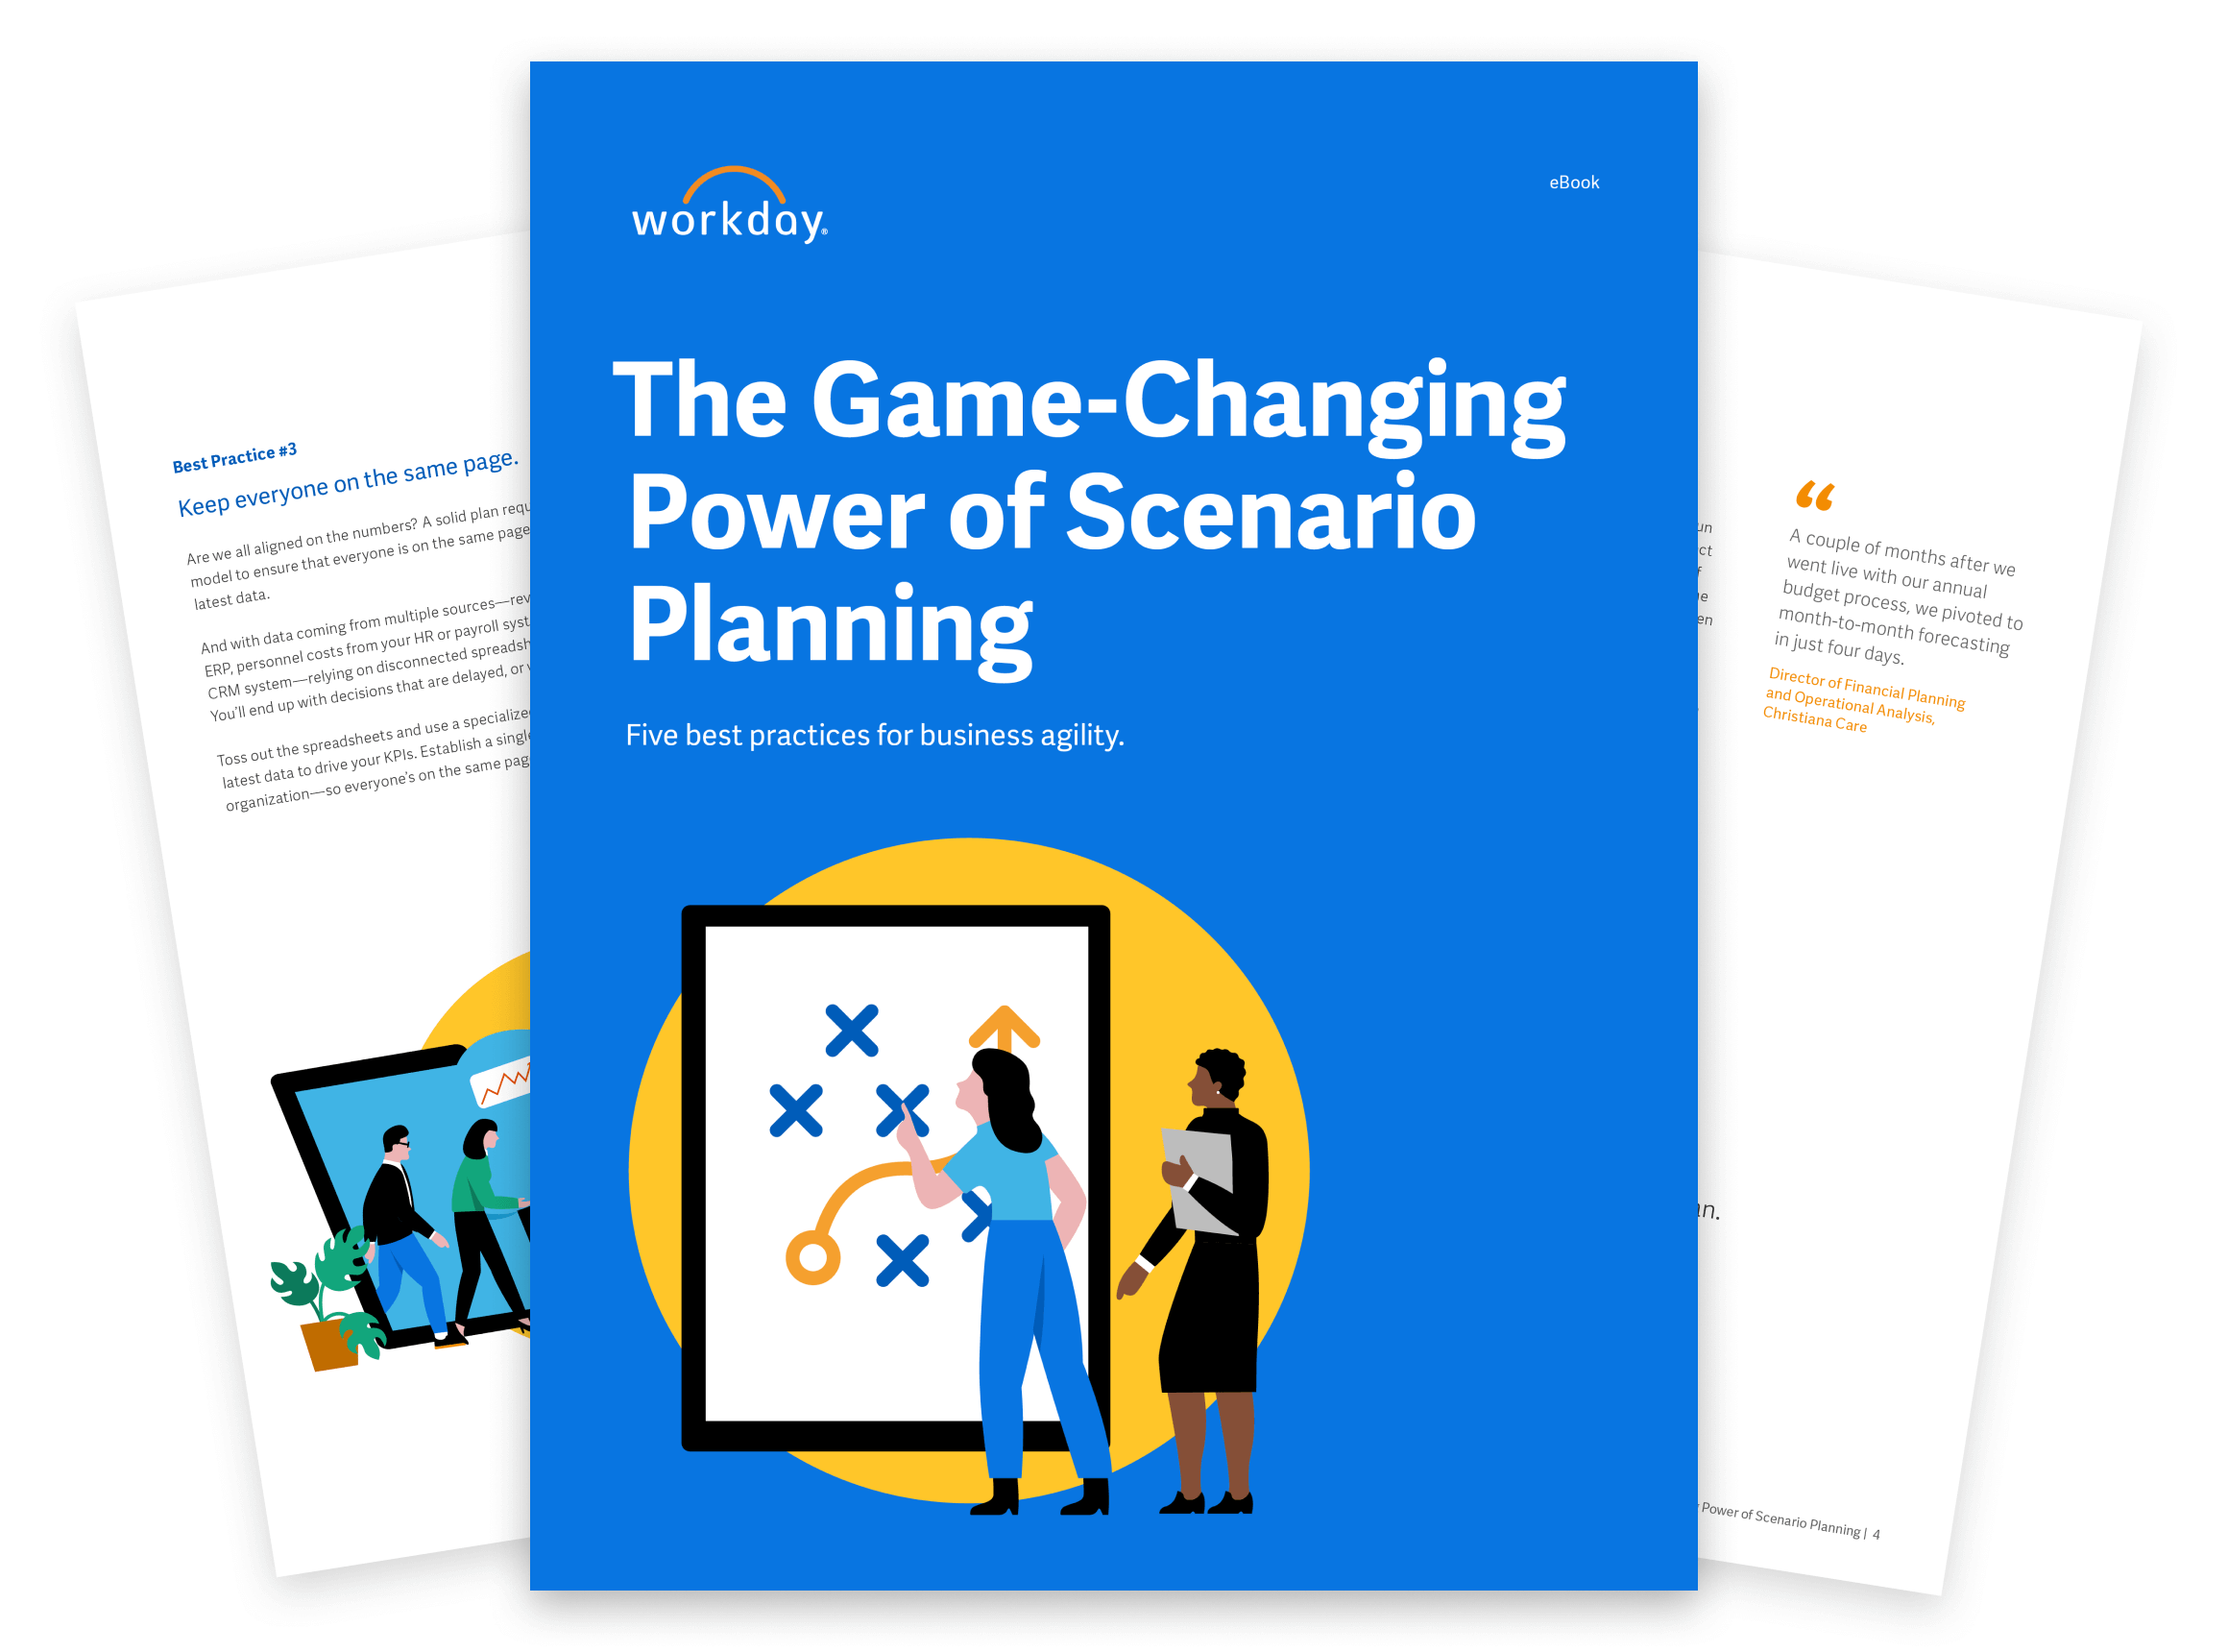 The Game-Changing Power of Scenario Planning